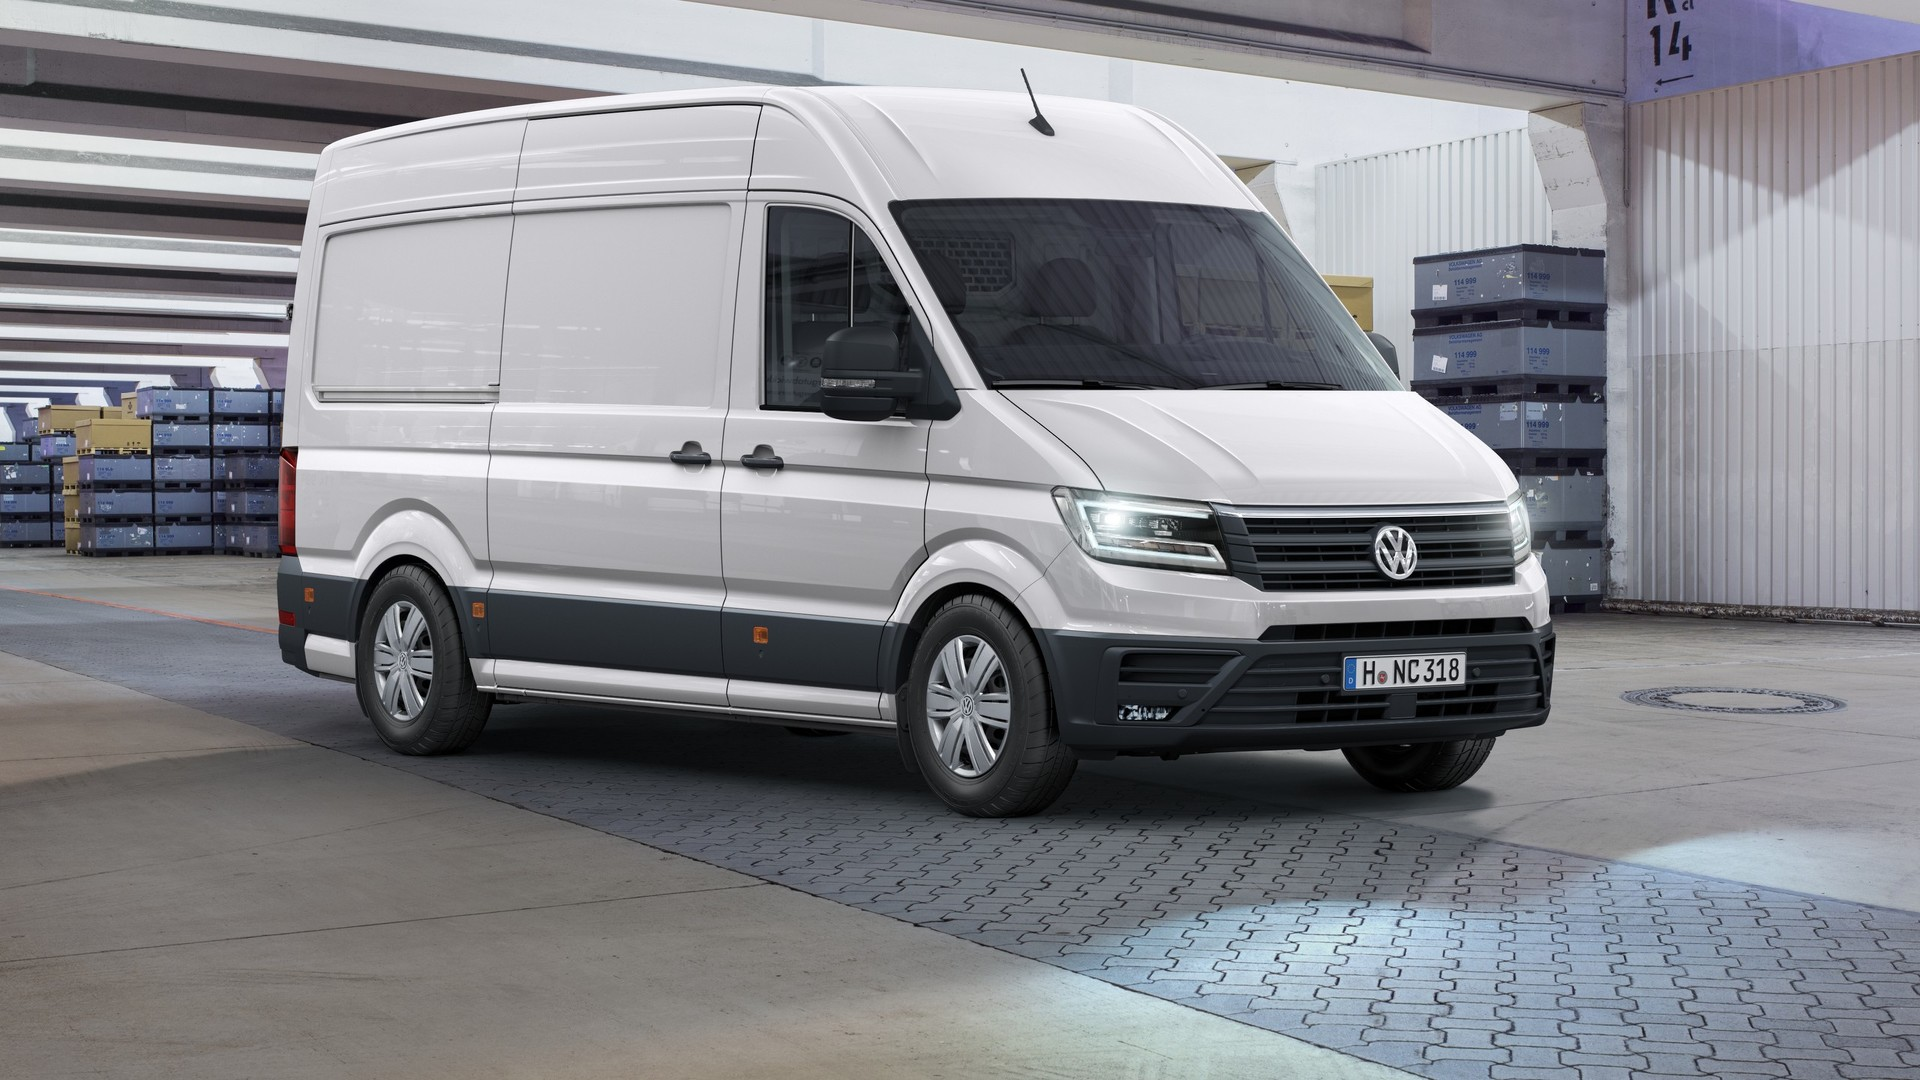 4b72fa60f4 www.motor1.com news 77678 all-new-vw-crafter-revealed-built-in-poland